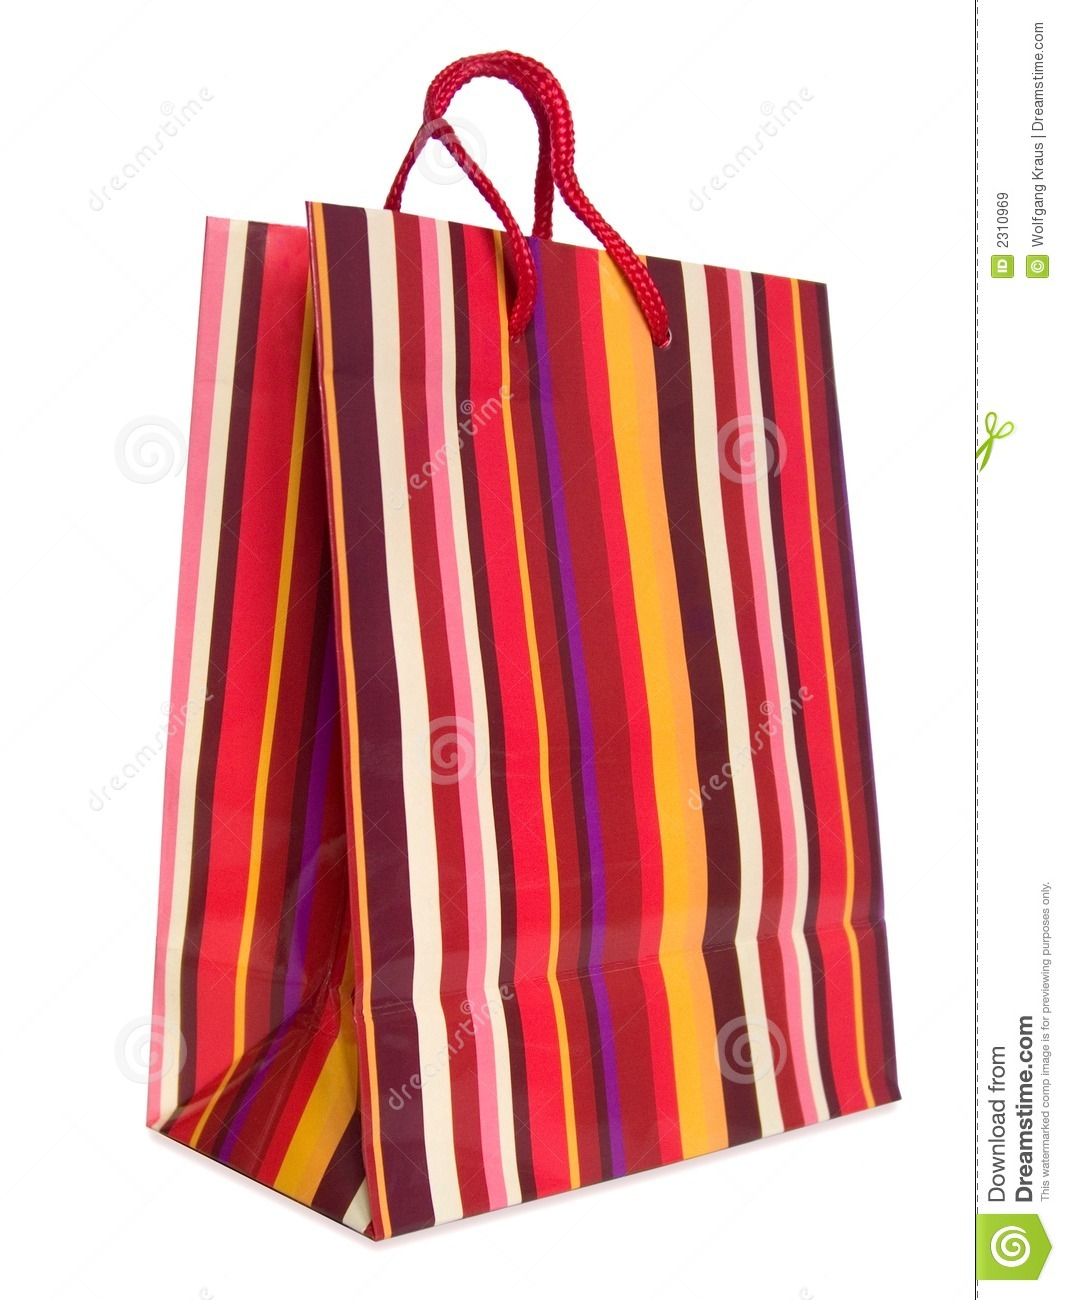 Colorful striped shopping bag